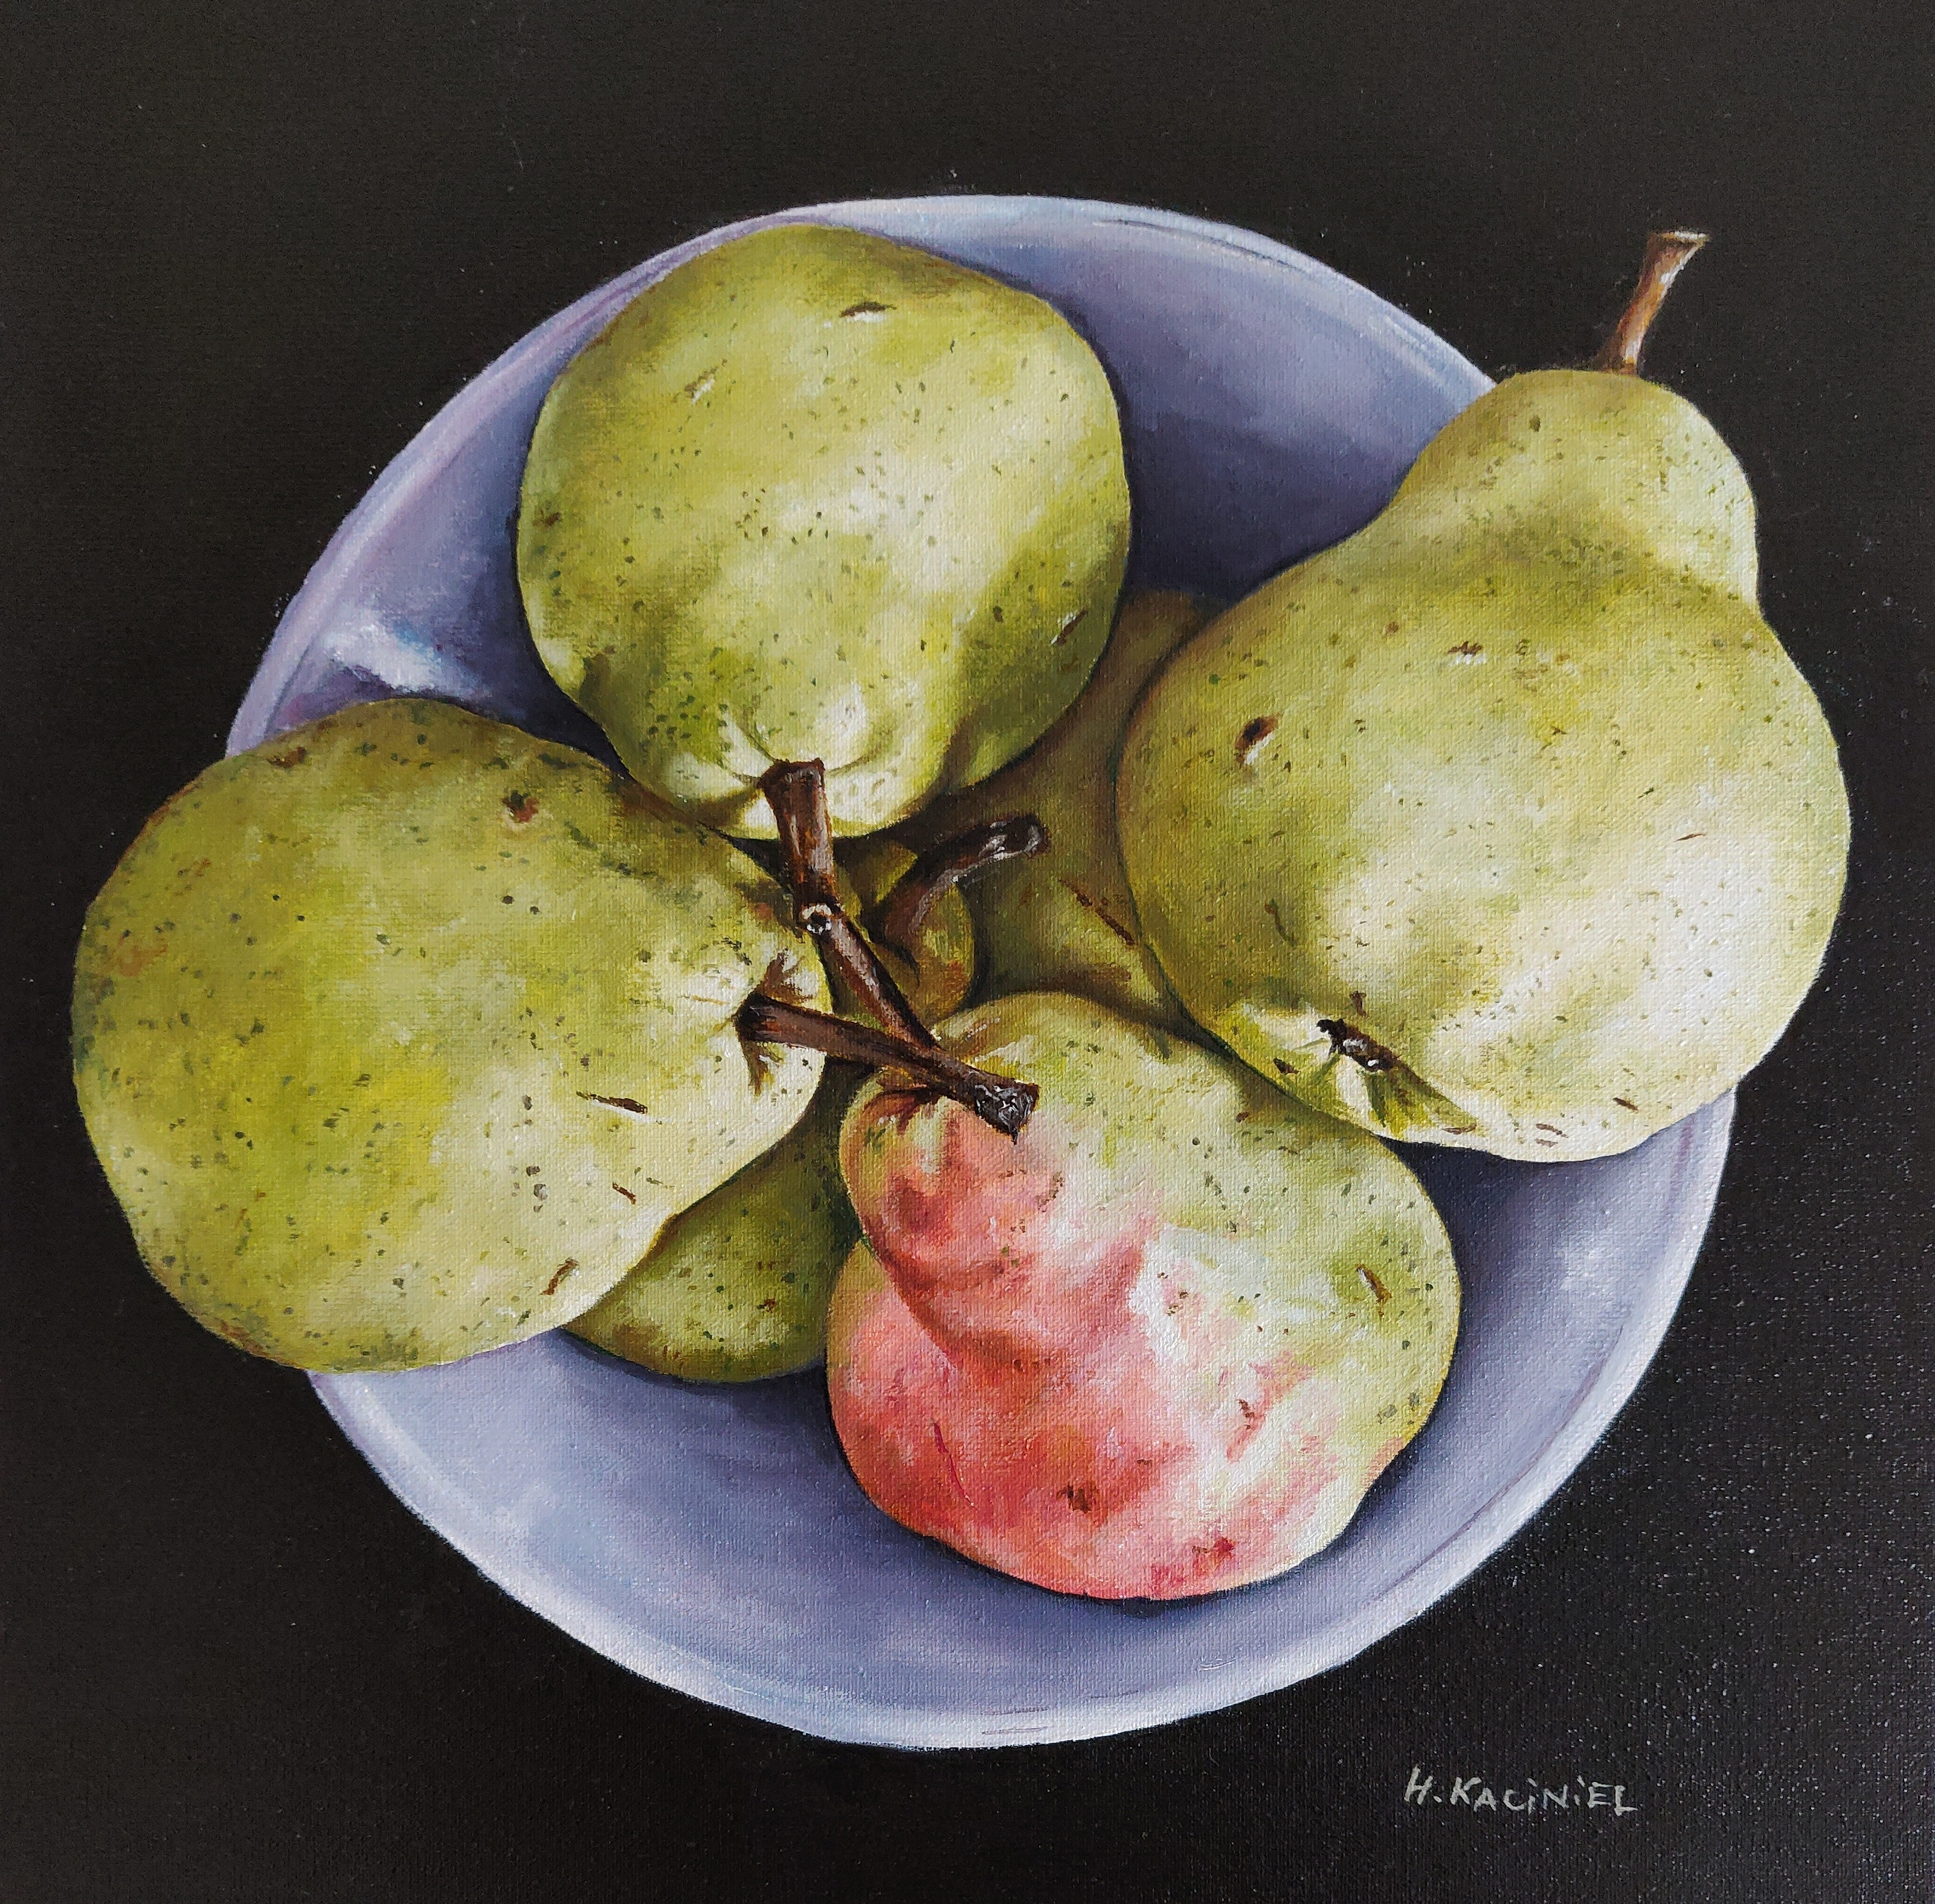 A bowl of Pears